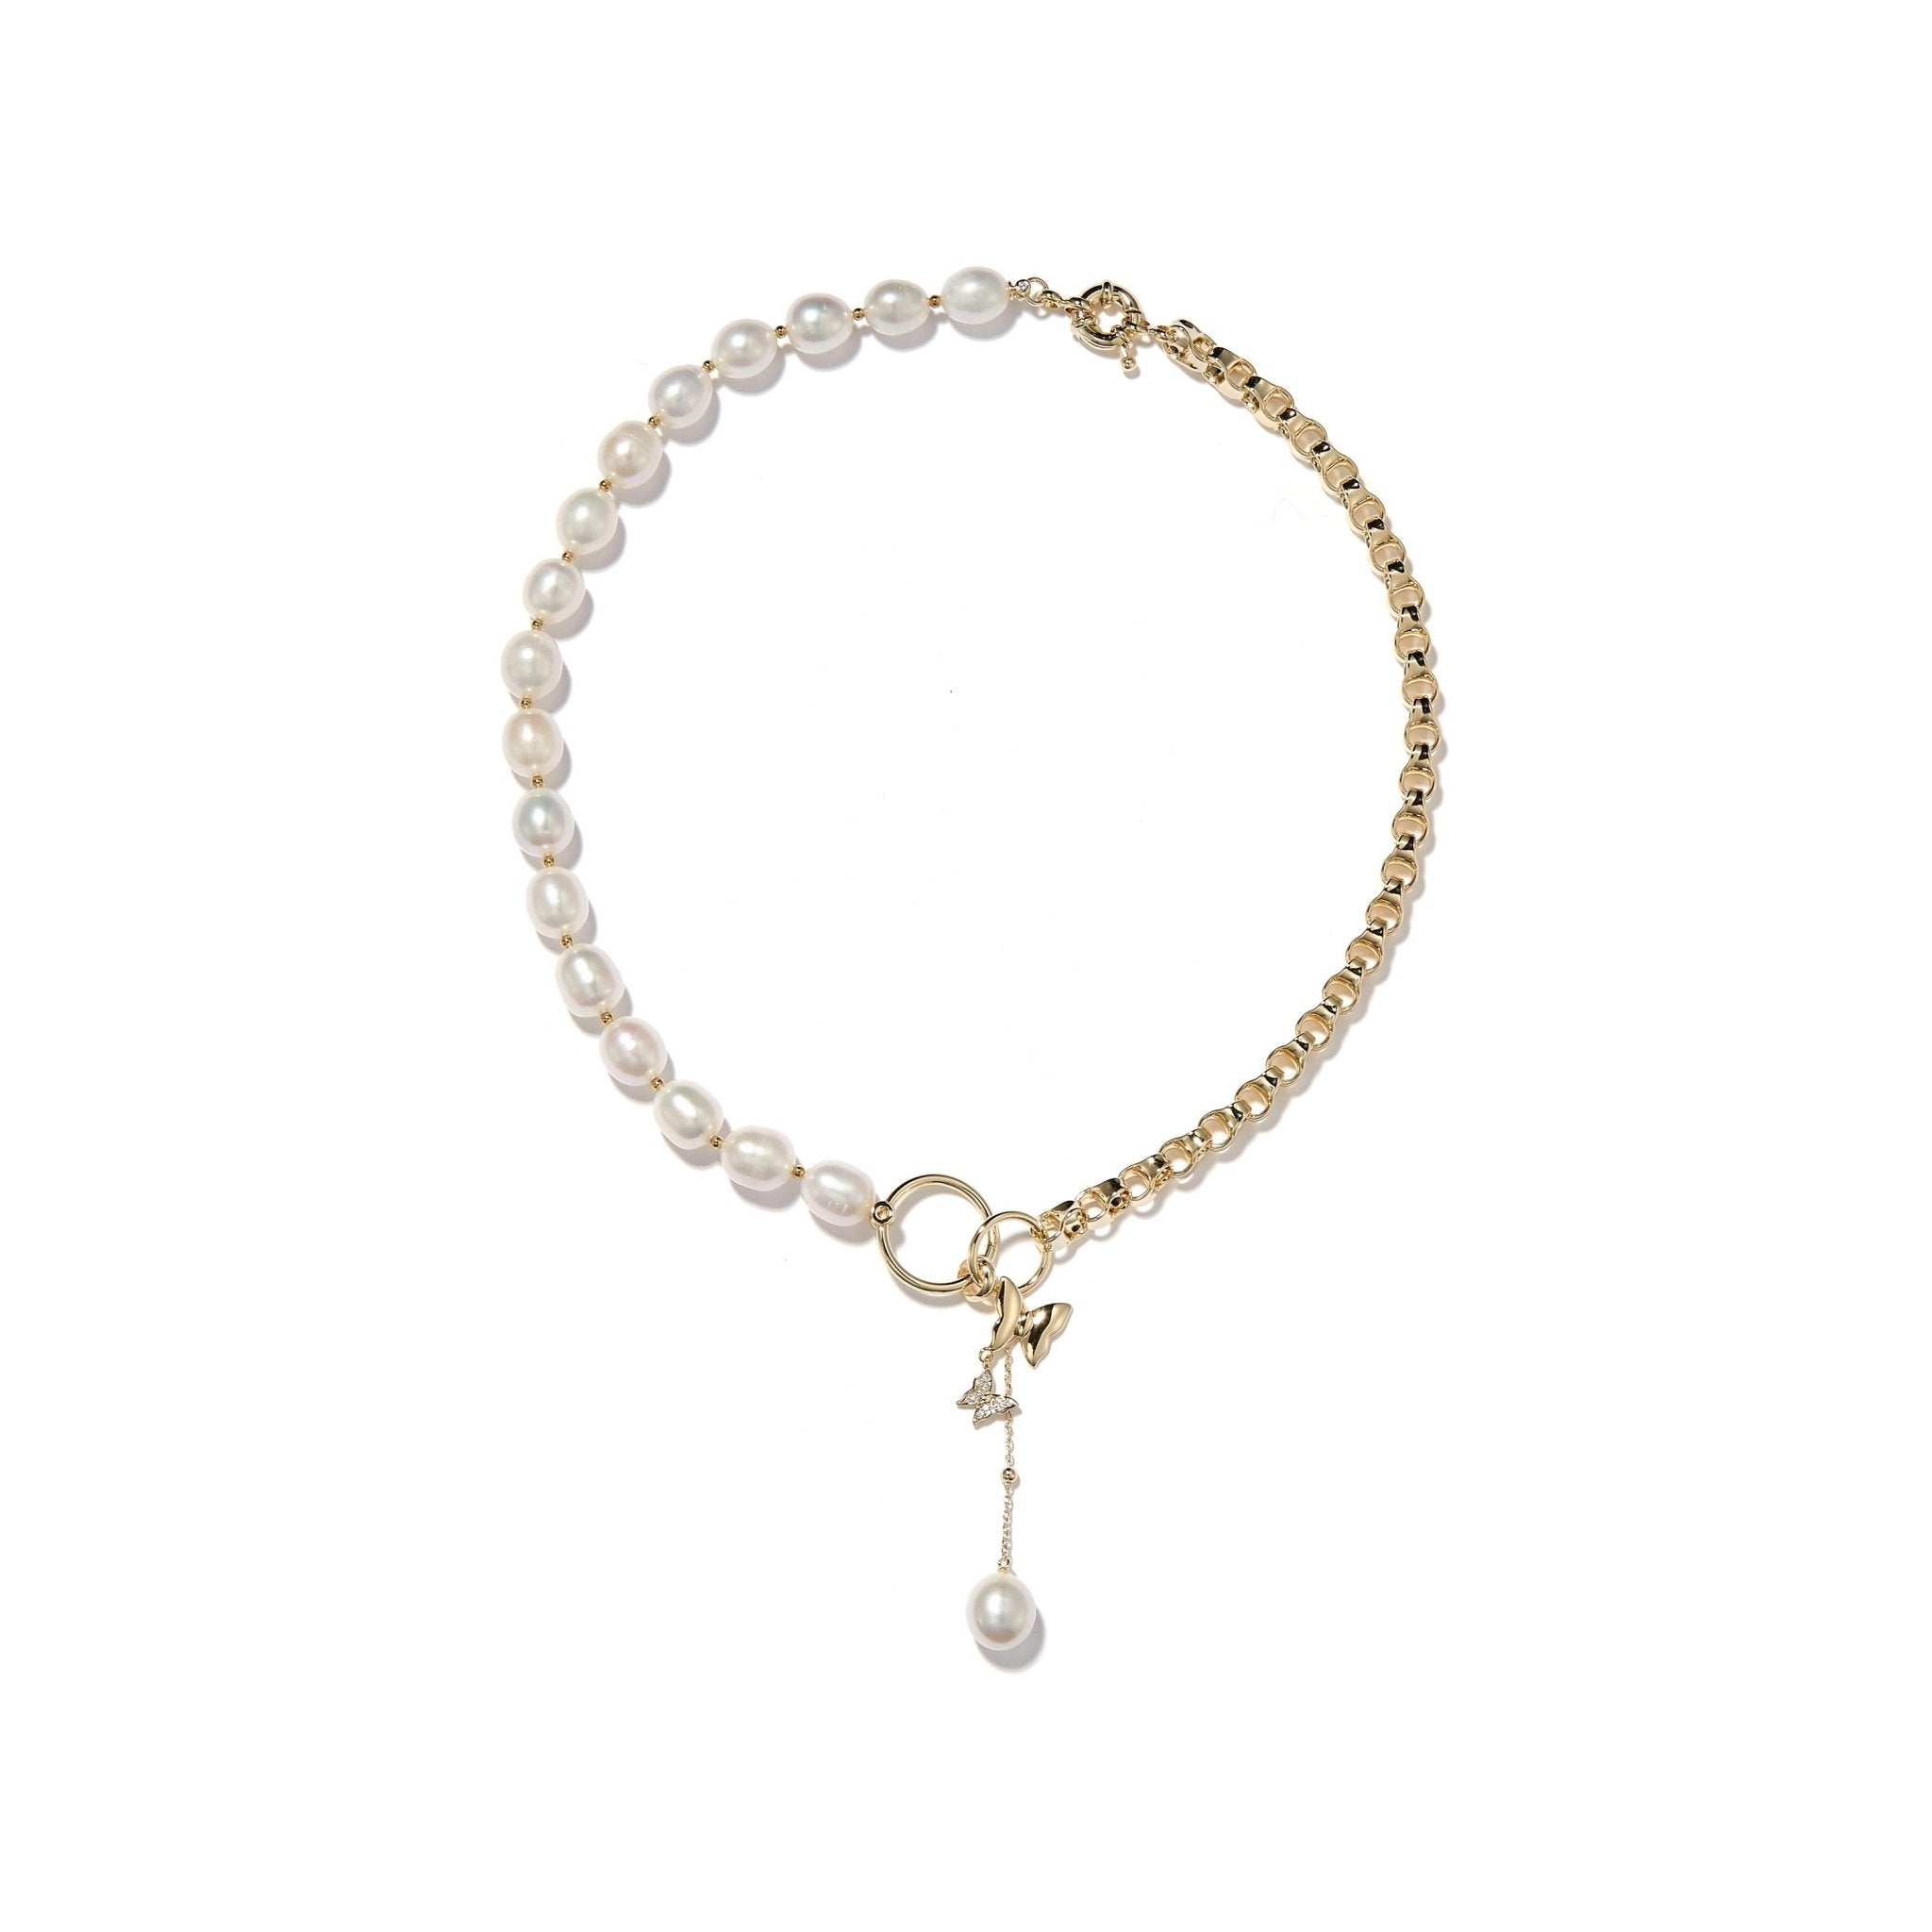 LOST IN ECHO Comma Pearl Necklace Gold | MADA IN CHINA